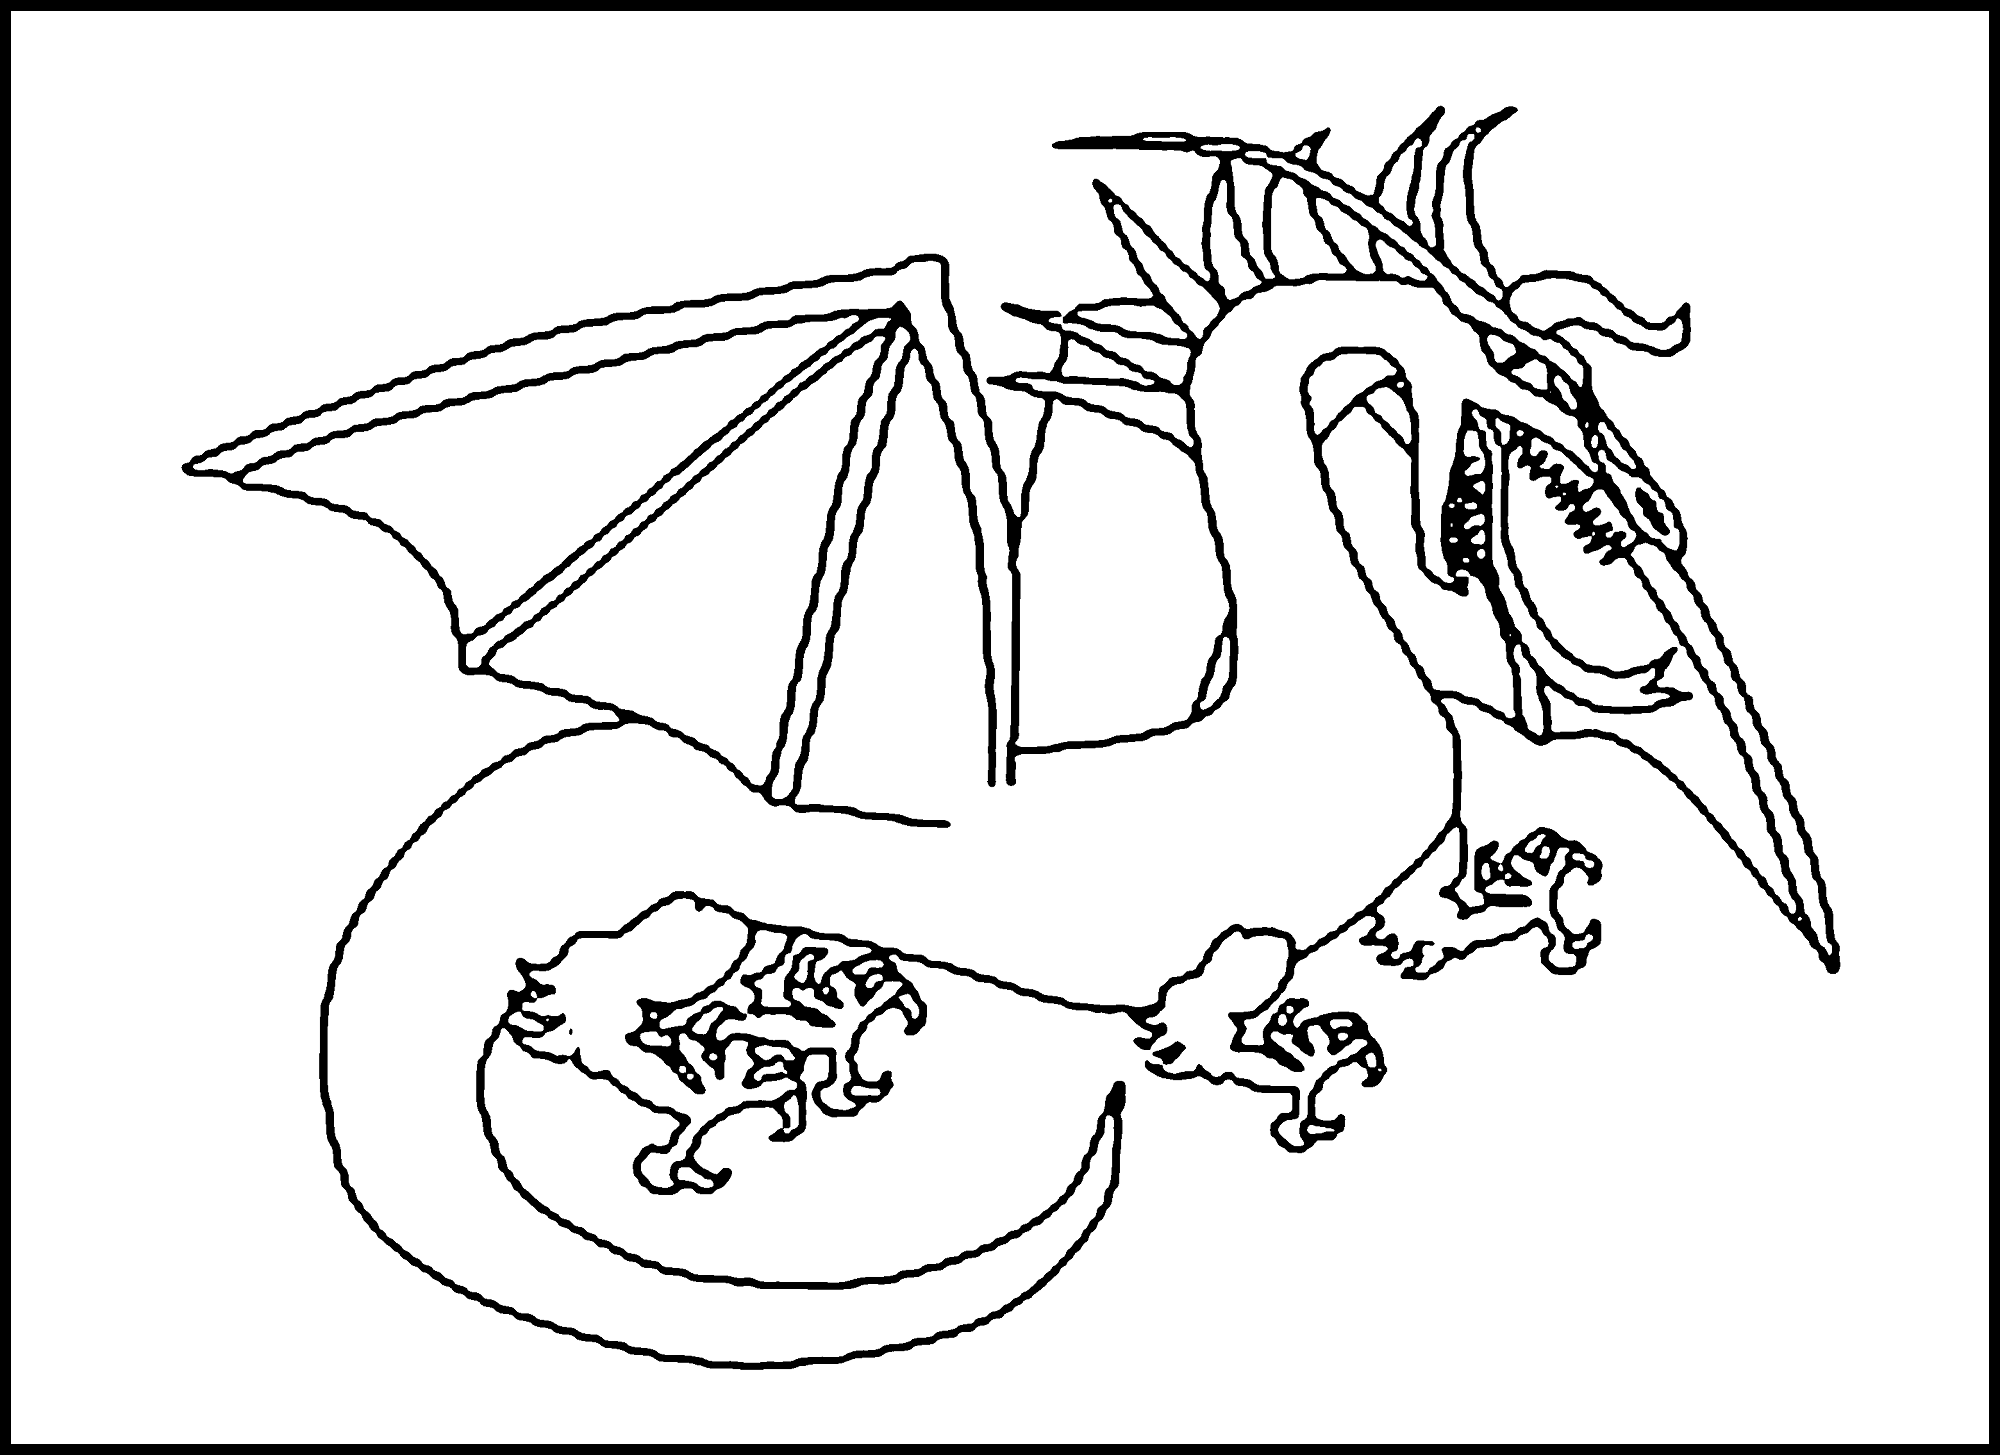 images of dragons to color dragon coloring pages for adults best coloring pages for dragons images color to of